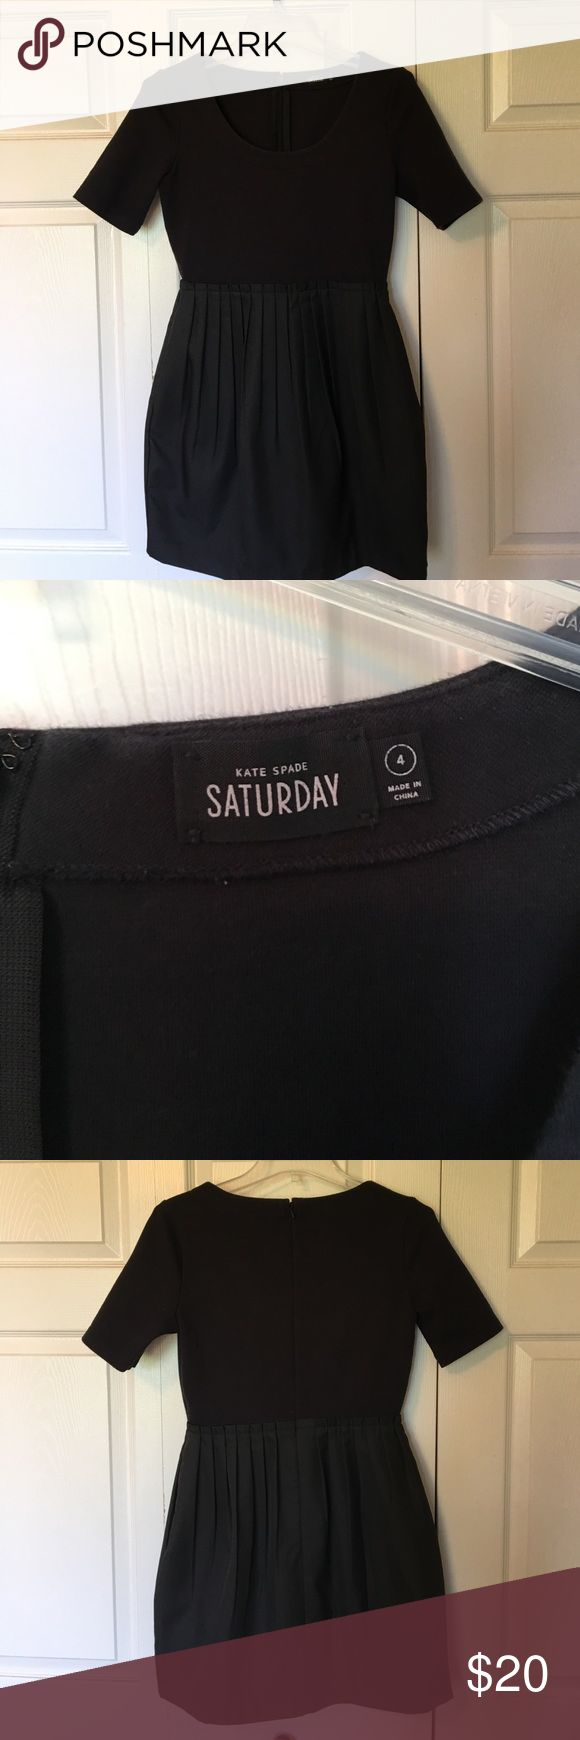 Kate Spade Saturday Black Tulip dress Kate Spade Saturday black tulip dress. Size four. Scoop neck and zippered back. Pockets in the skirt. Top part is a knit. Skirt is lined woven polyester. Worn and washed a couple of times, with some wear and fading around the neckline. See last picture. kate spade Dresses Mini